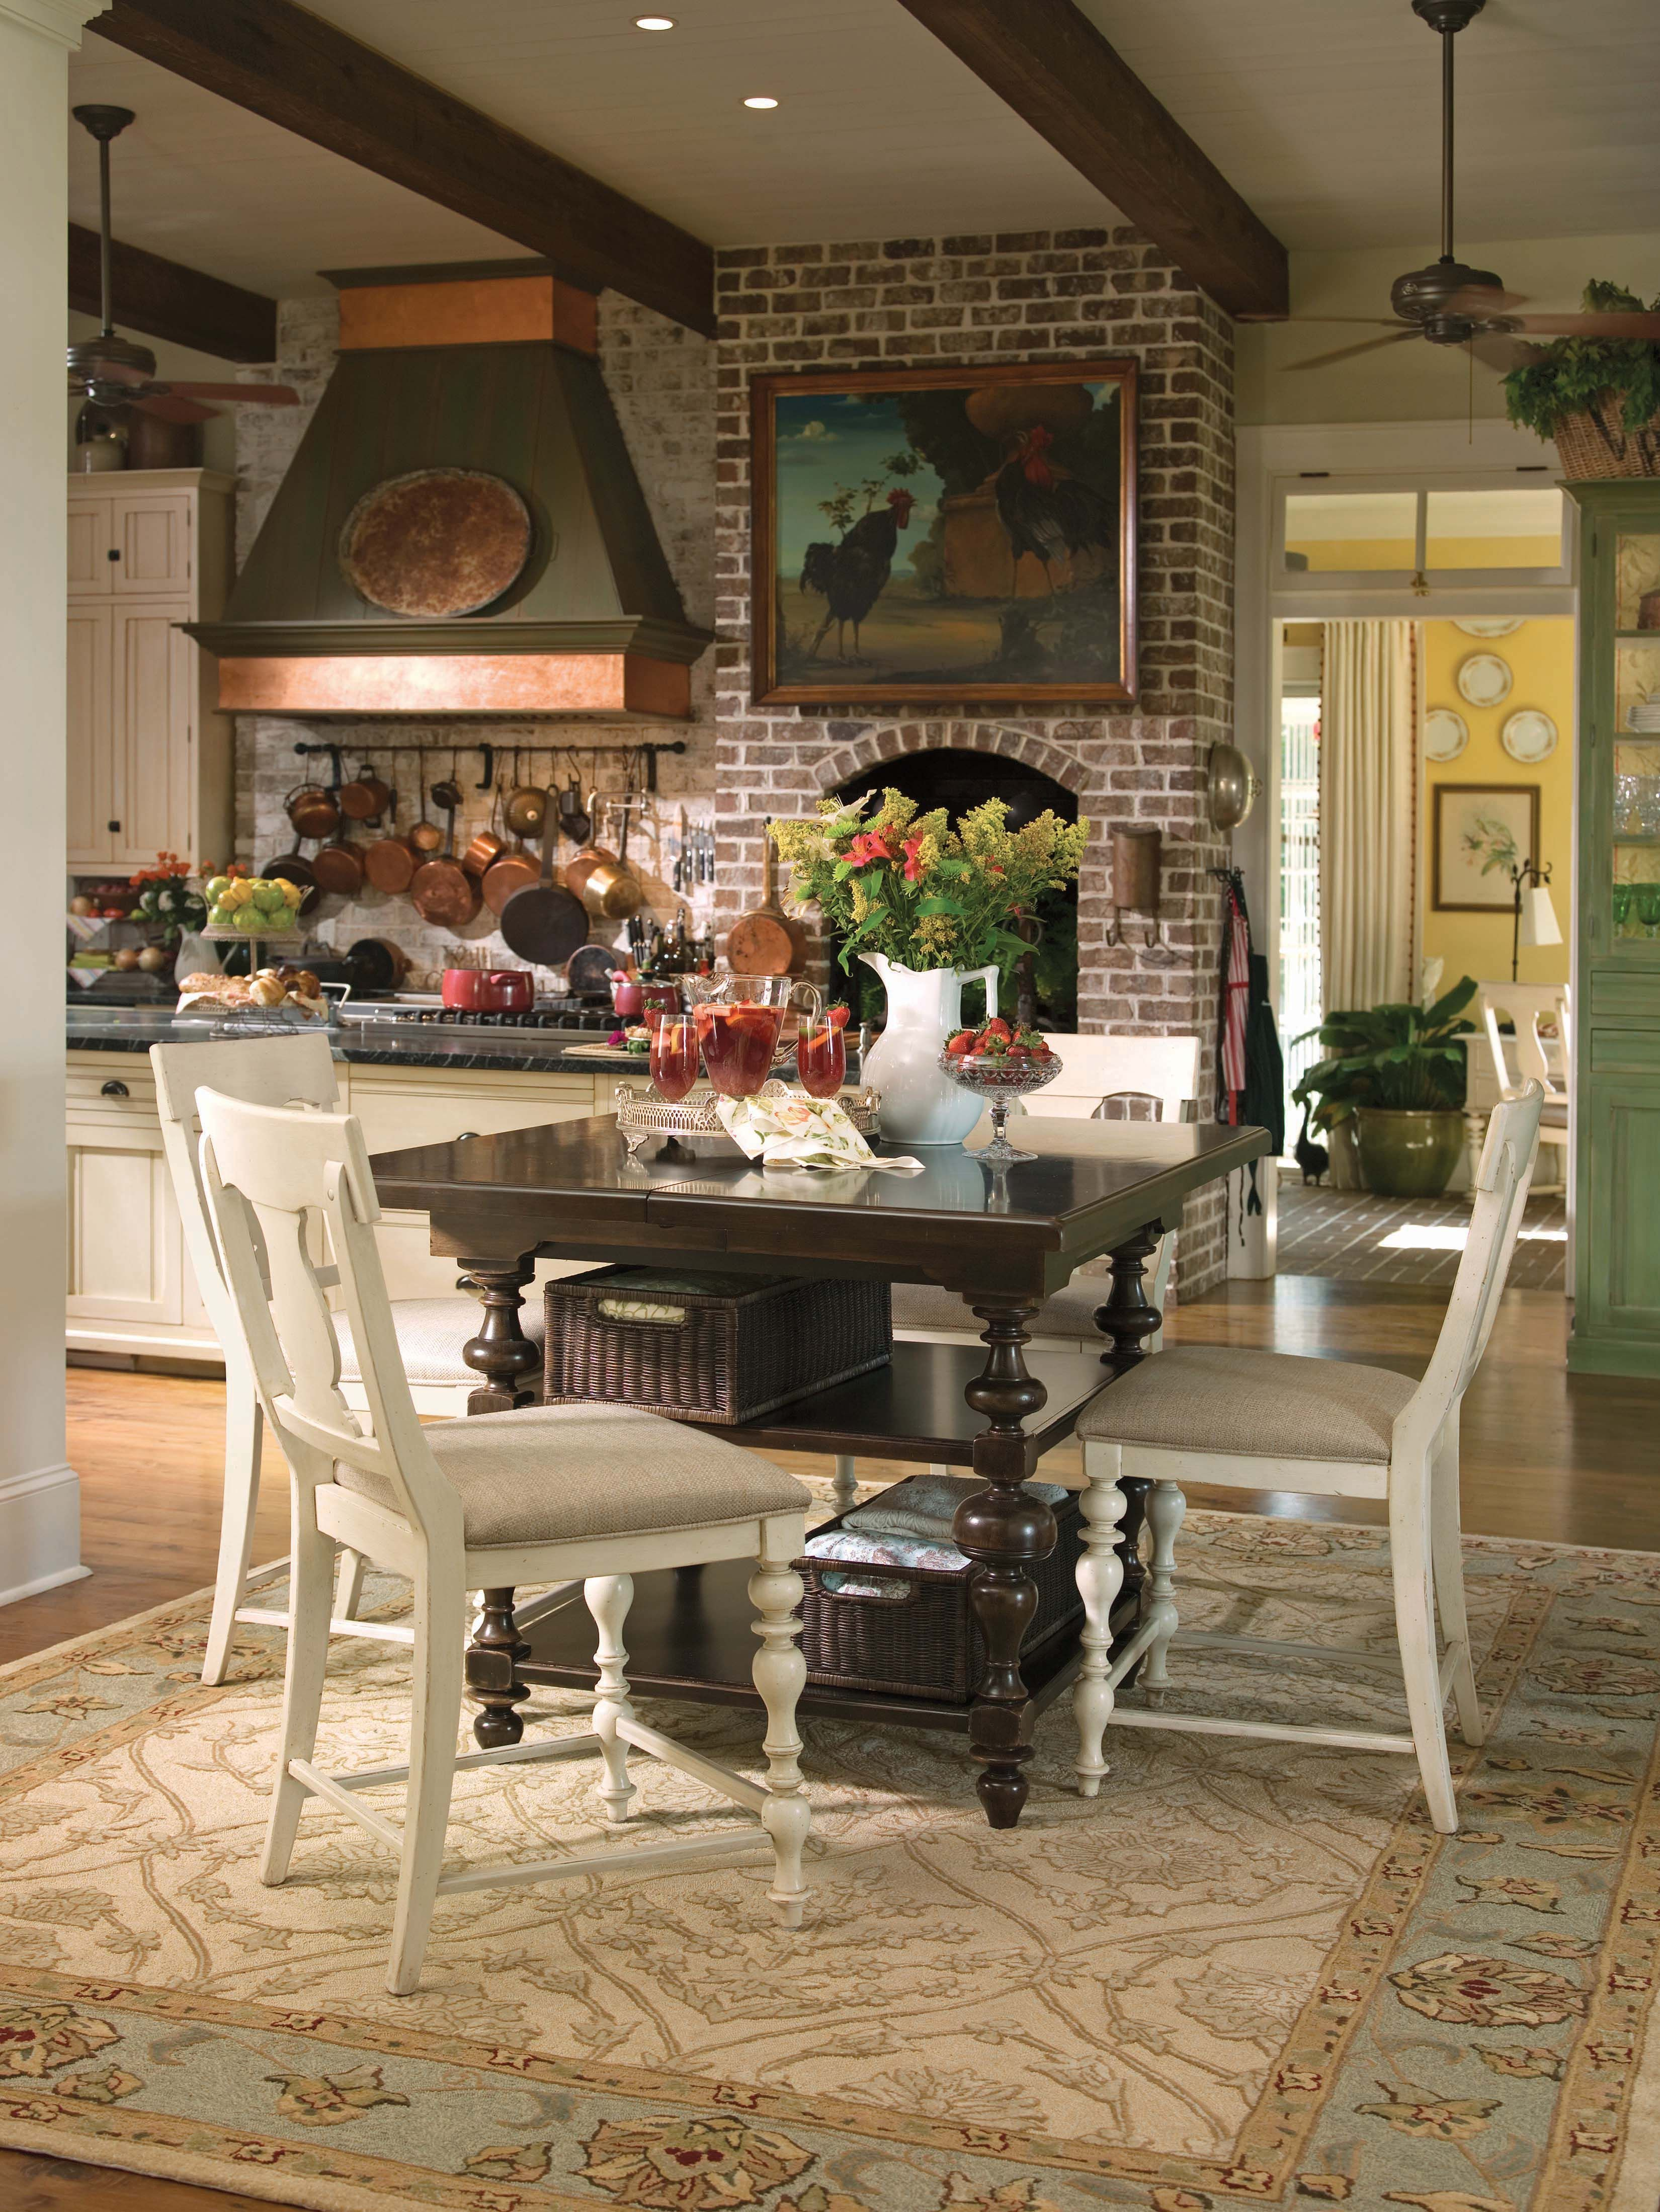 Paula Deen Home Collection Kitchen Gathering Table And Counter Entrancing Paula Deen Dining Room Set Decorating Design